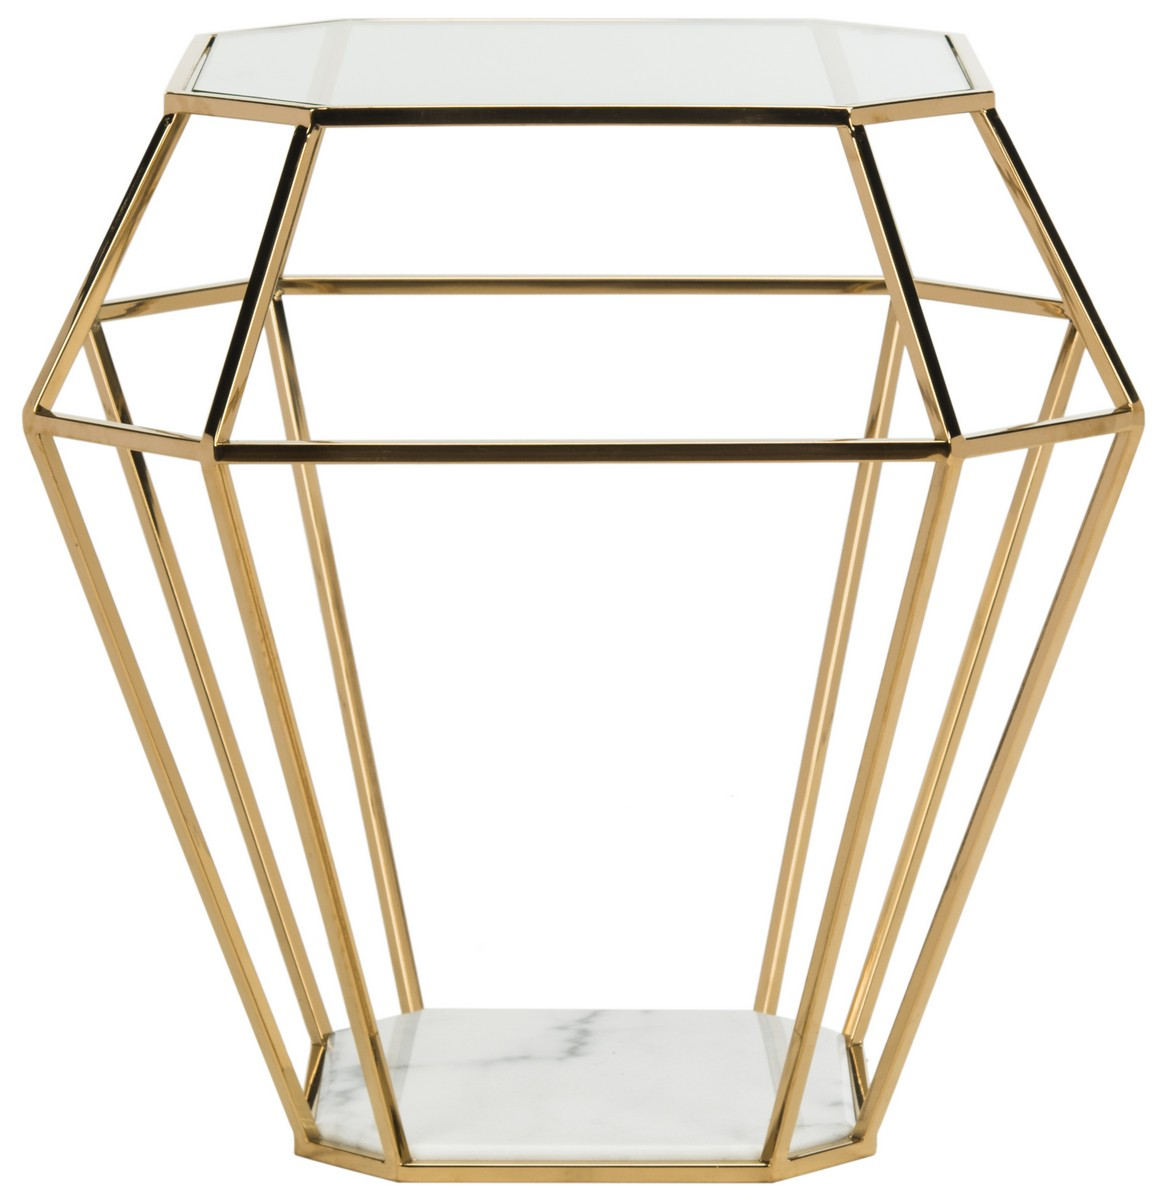 contemporary geometric marble top accent table safavieh front gold with share this product high end furniture teak dining set dark grey side metal basket vintage mid century